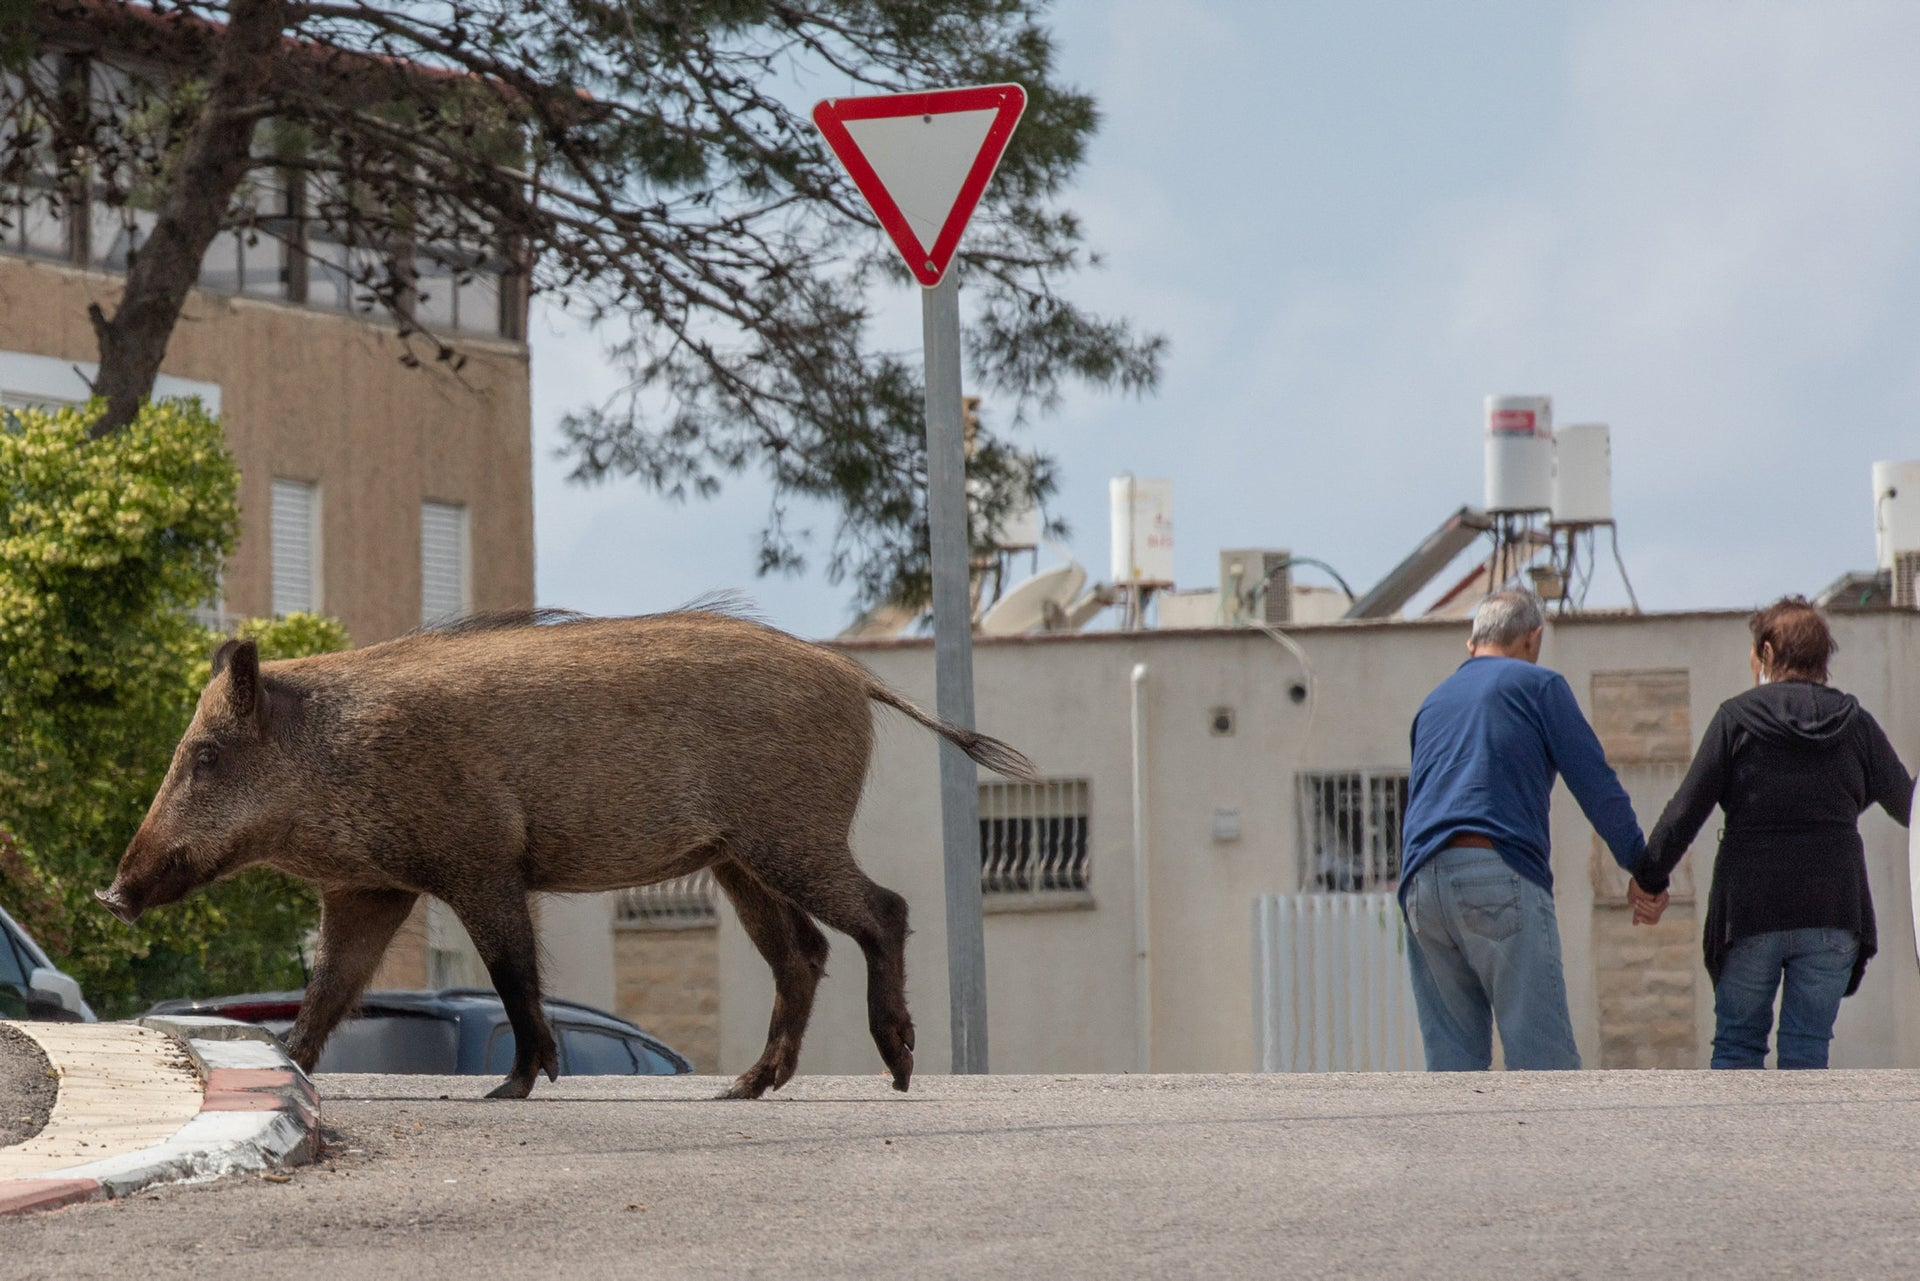 A wild boar in Haifa, northern Israel, April 13, 2020.